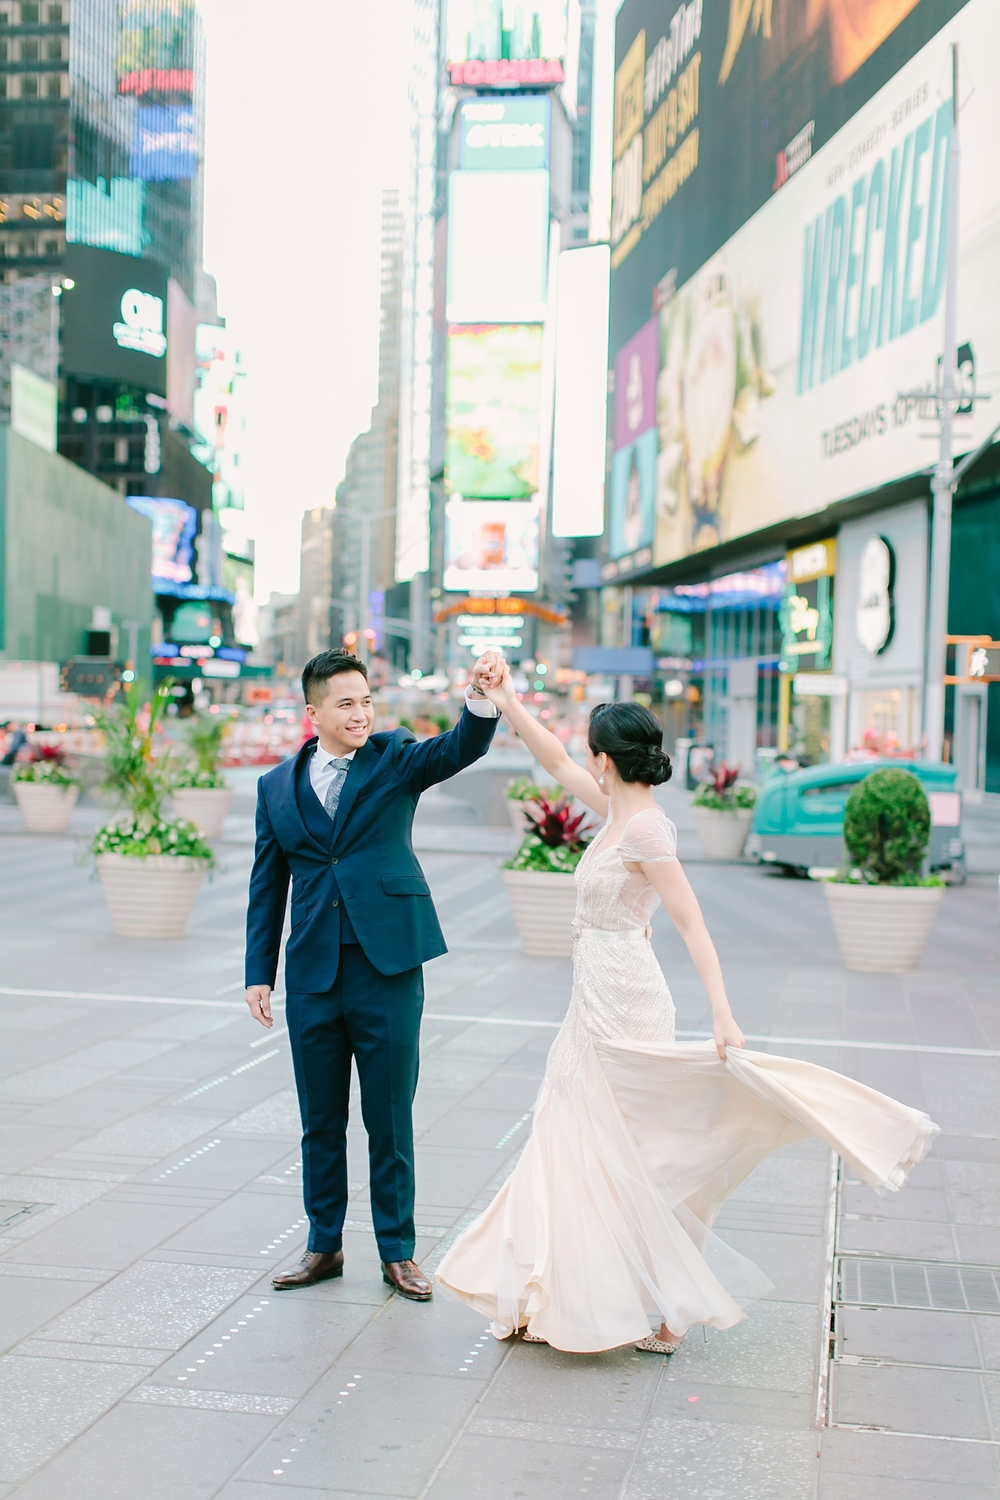 times_square_central_park_new_york_wedding_photos_0003.jpg